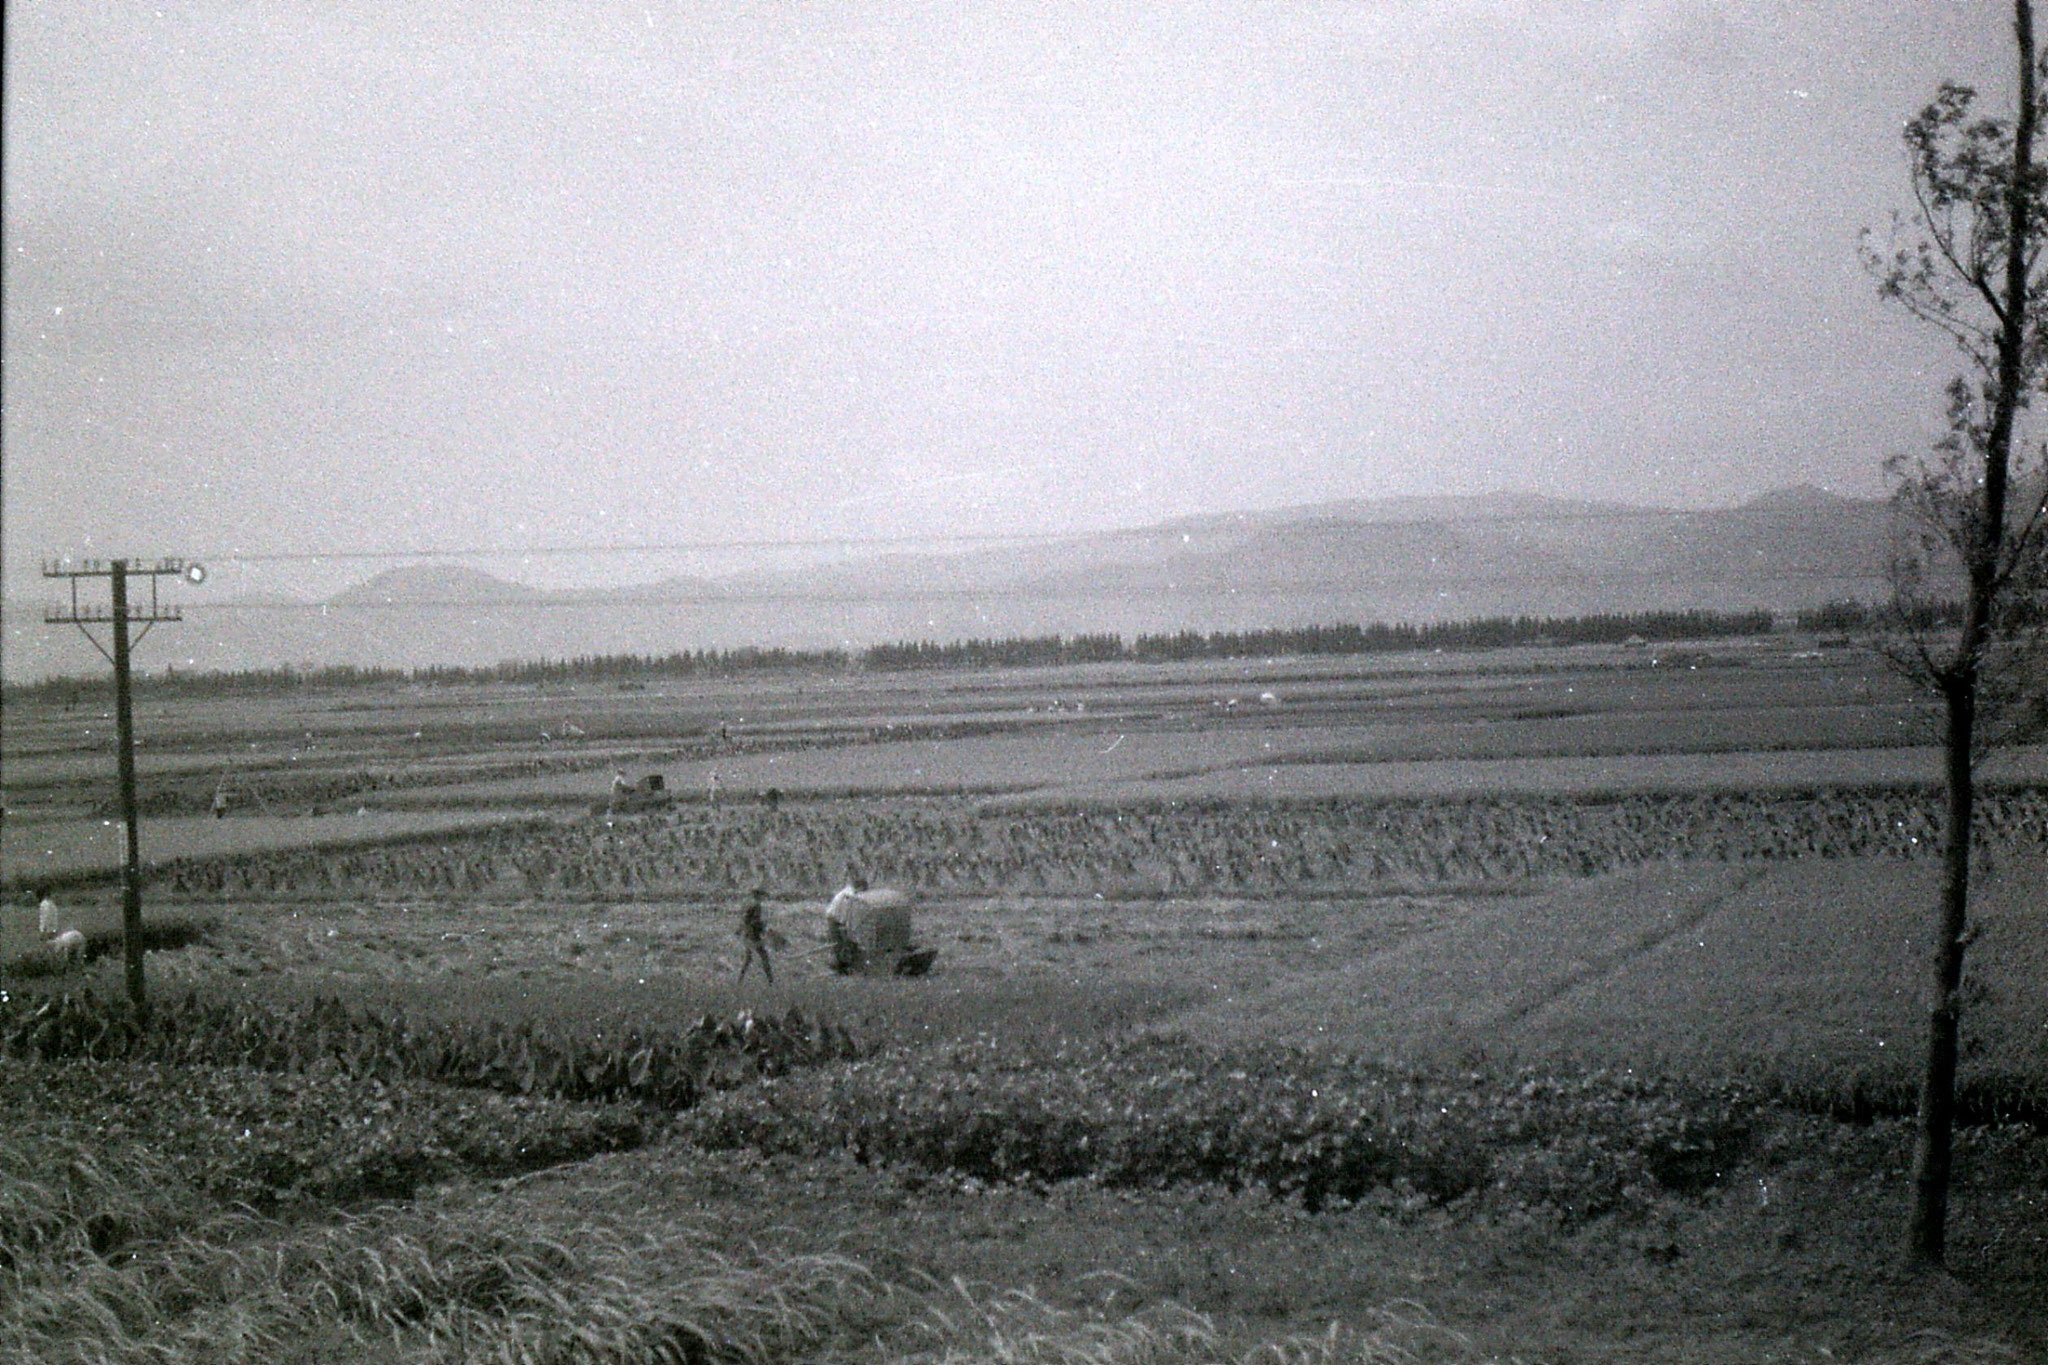 23/7/1989: 21: fields from train to Ningbo